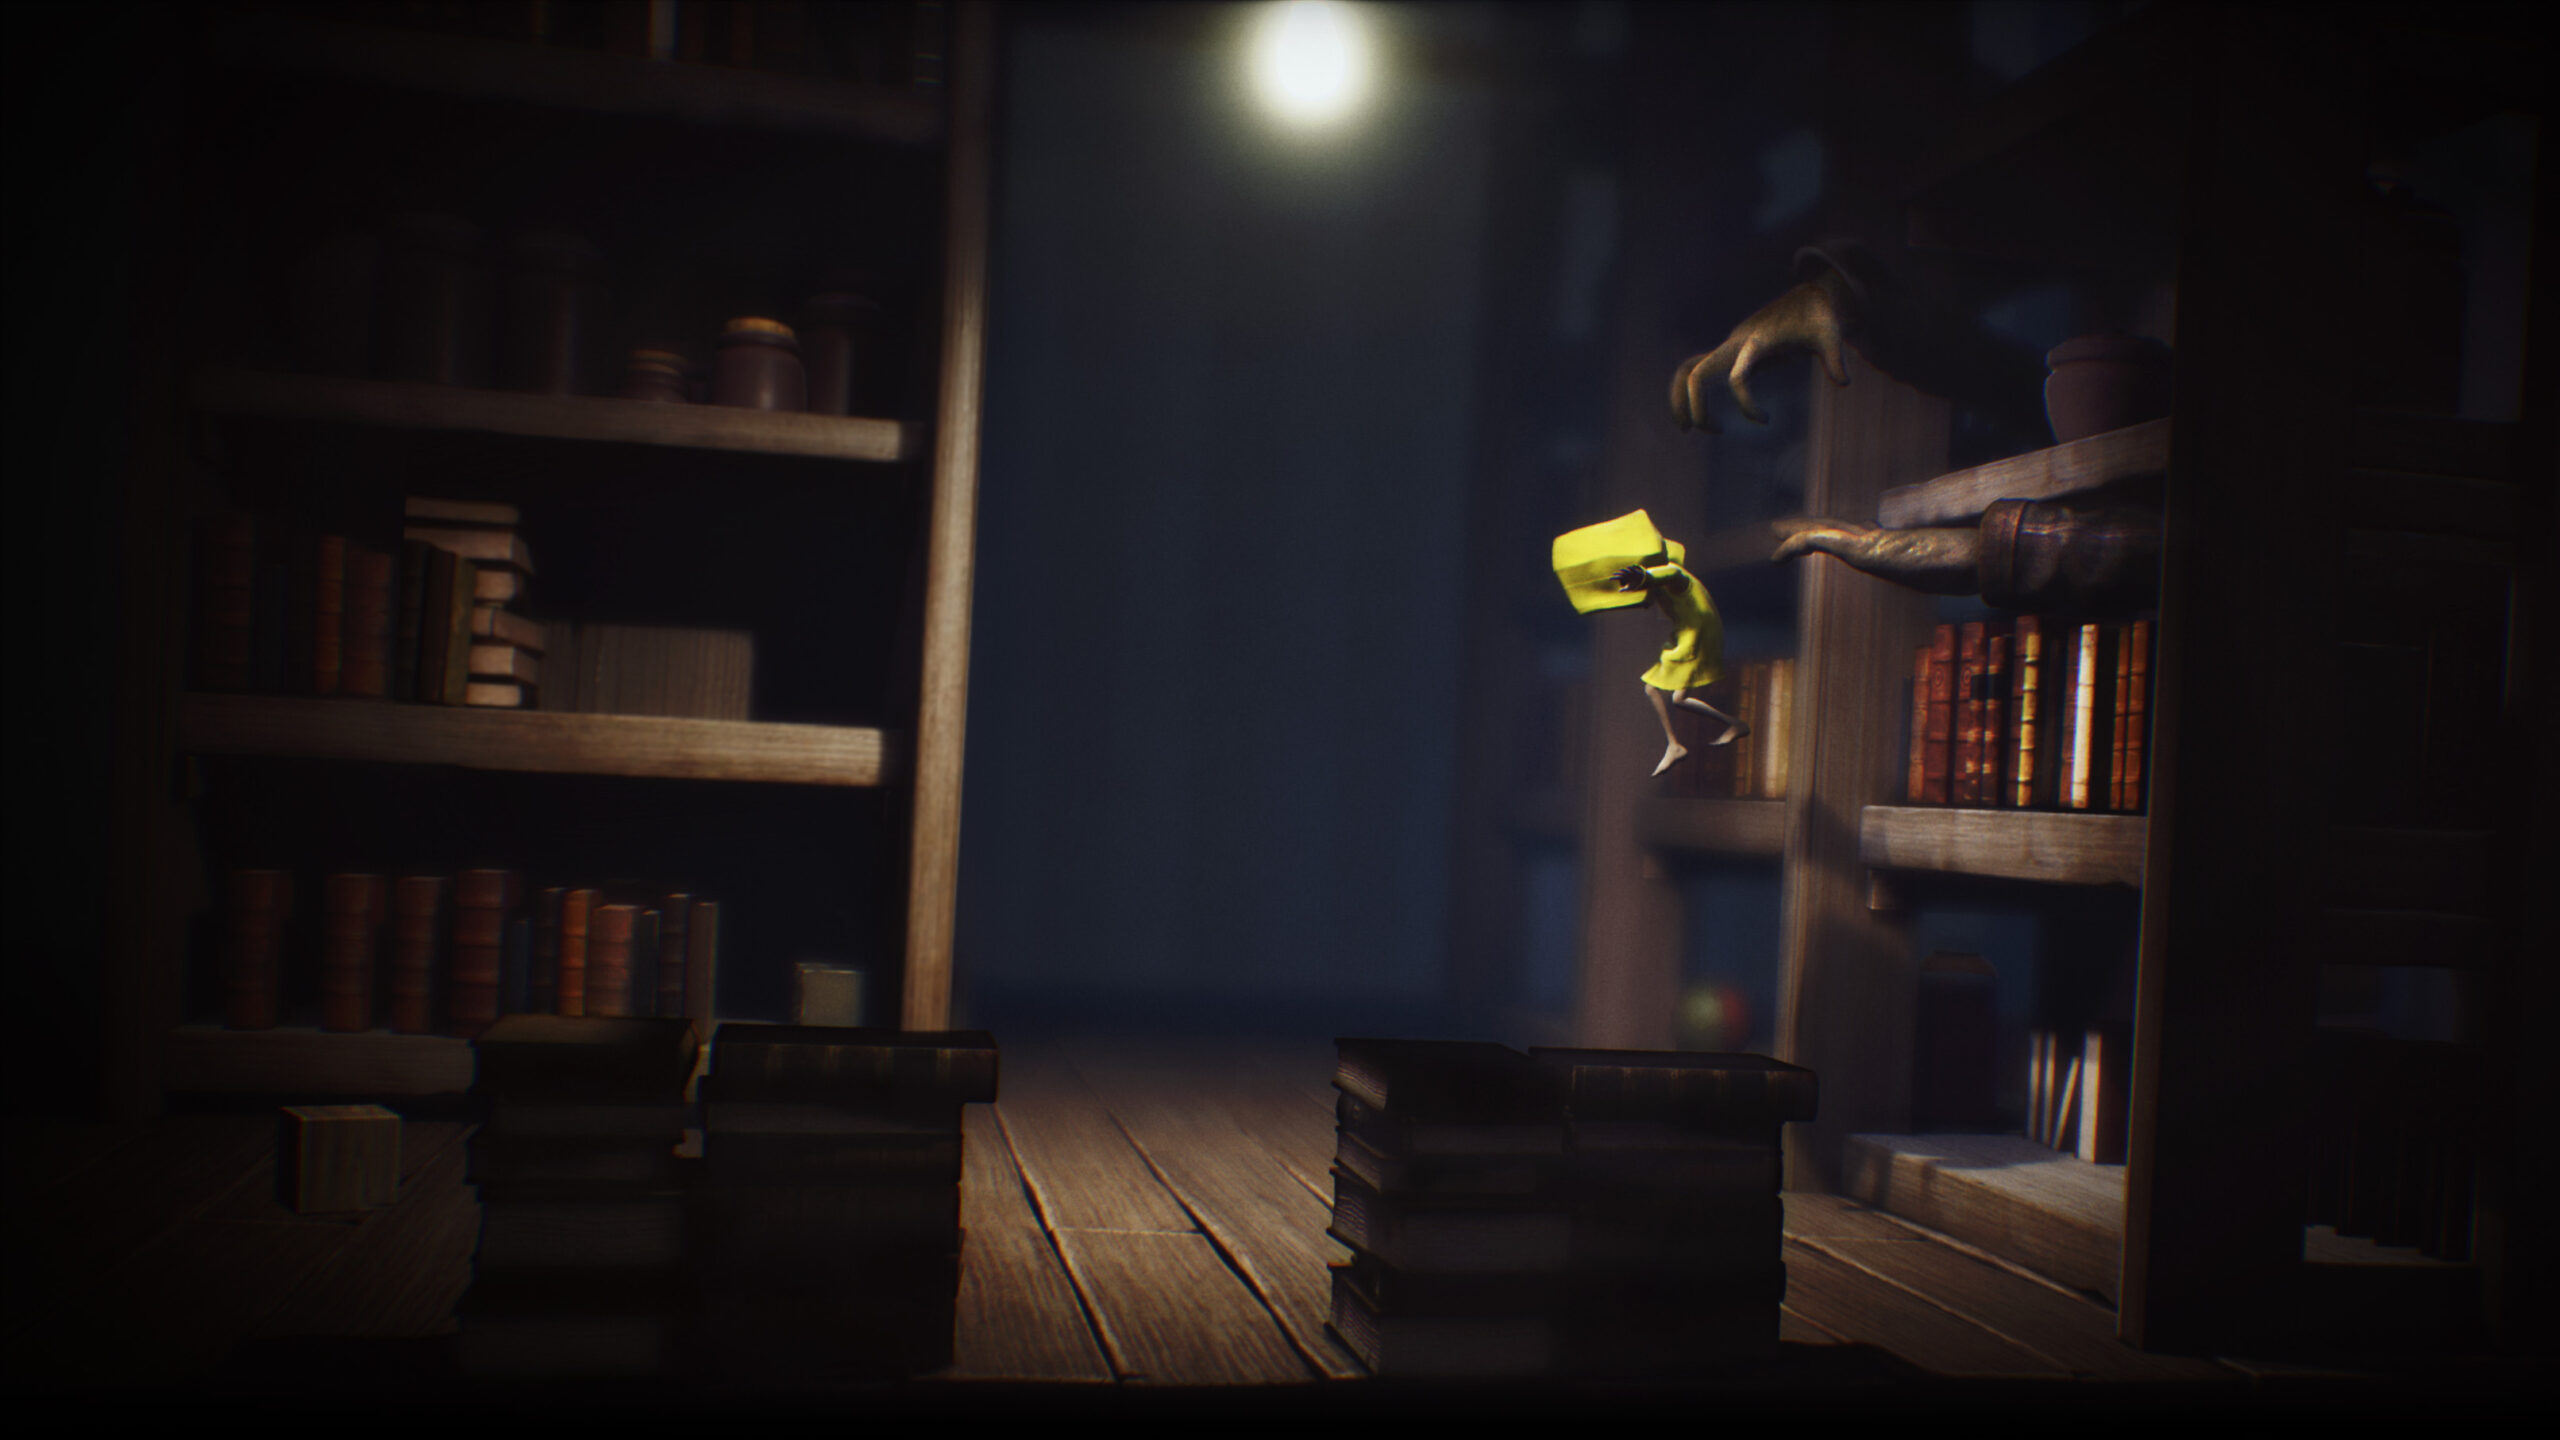 Little-Nightmares_2017_02-08-17_006